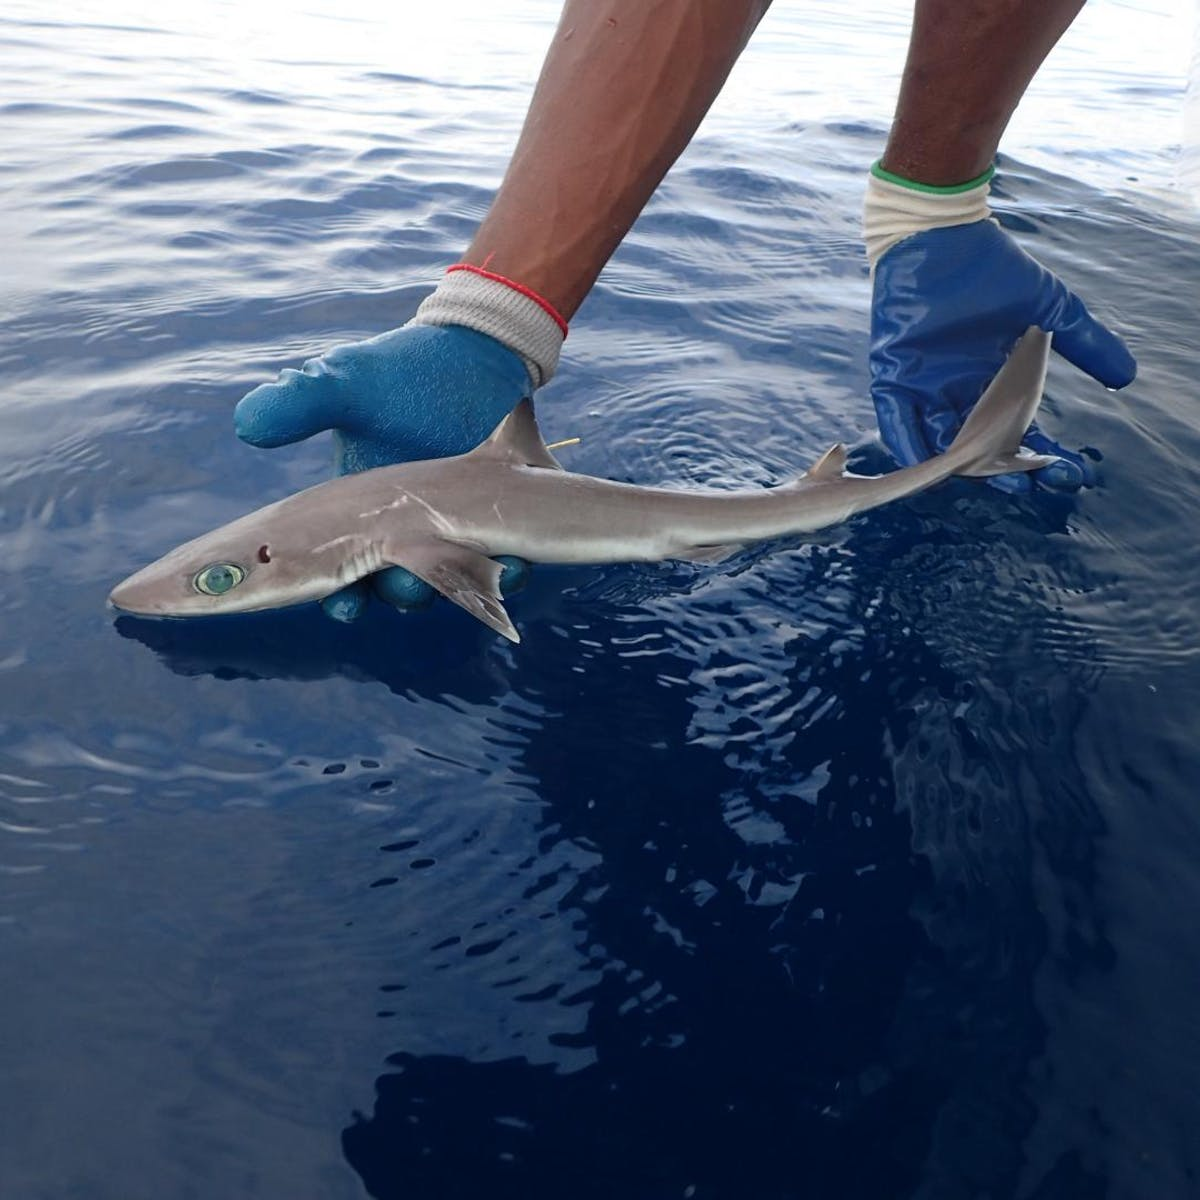 Shark Week: How Scientists Discovered a New Shark Species Near Florida